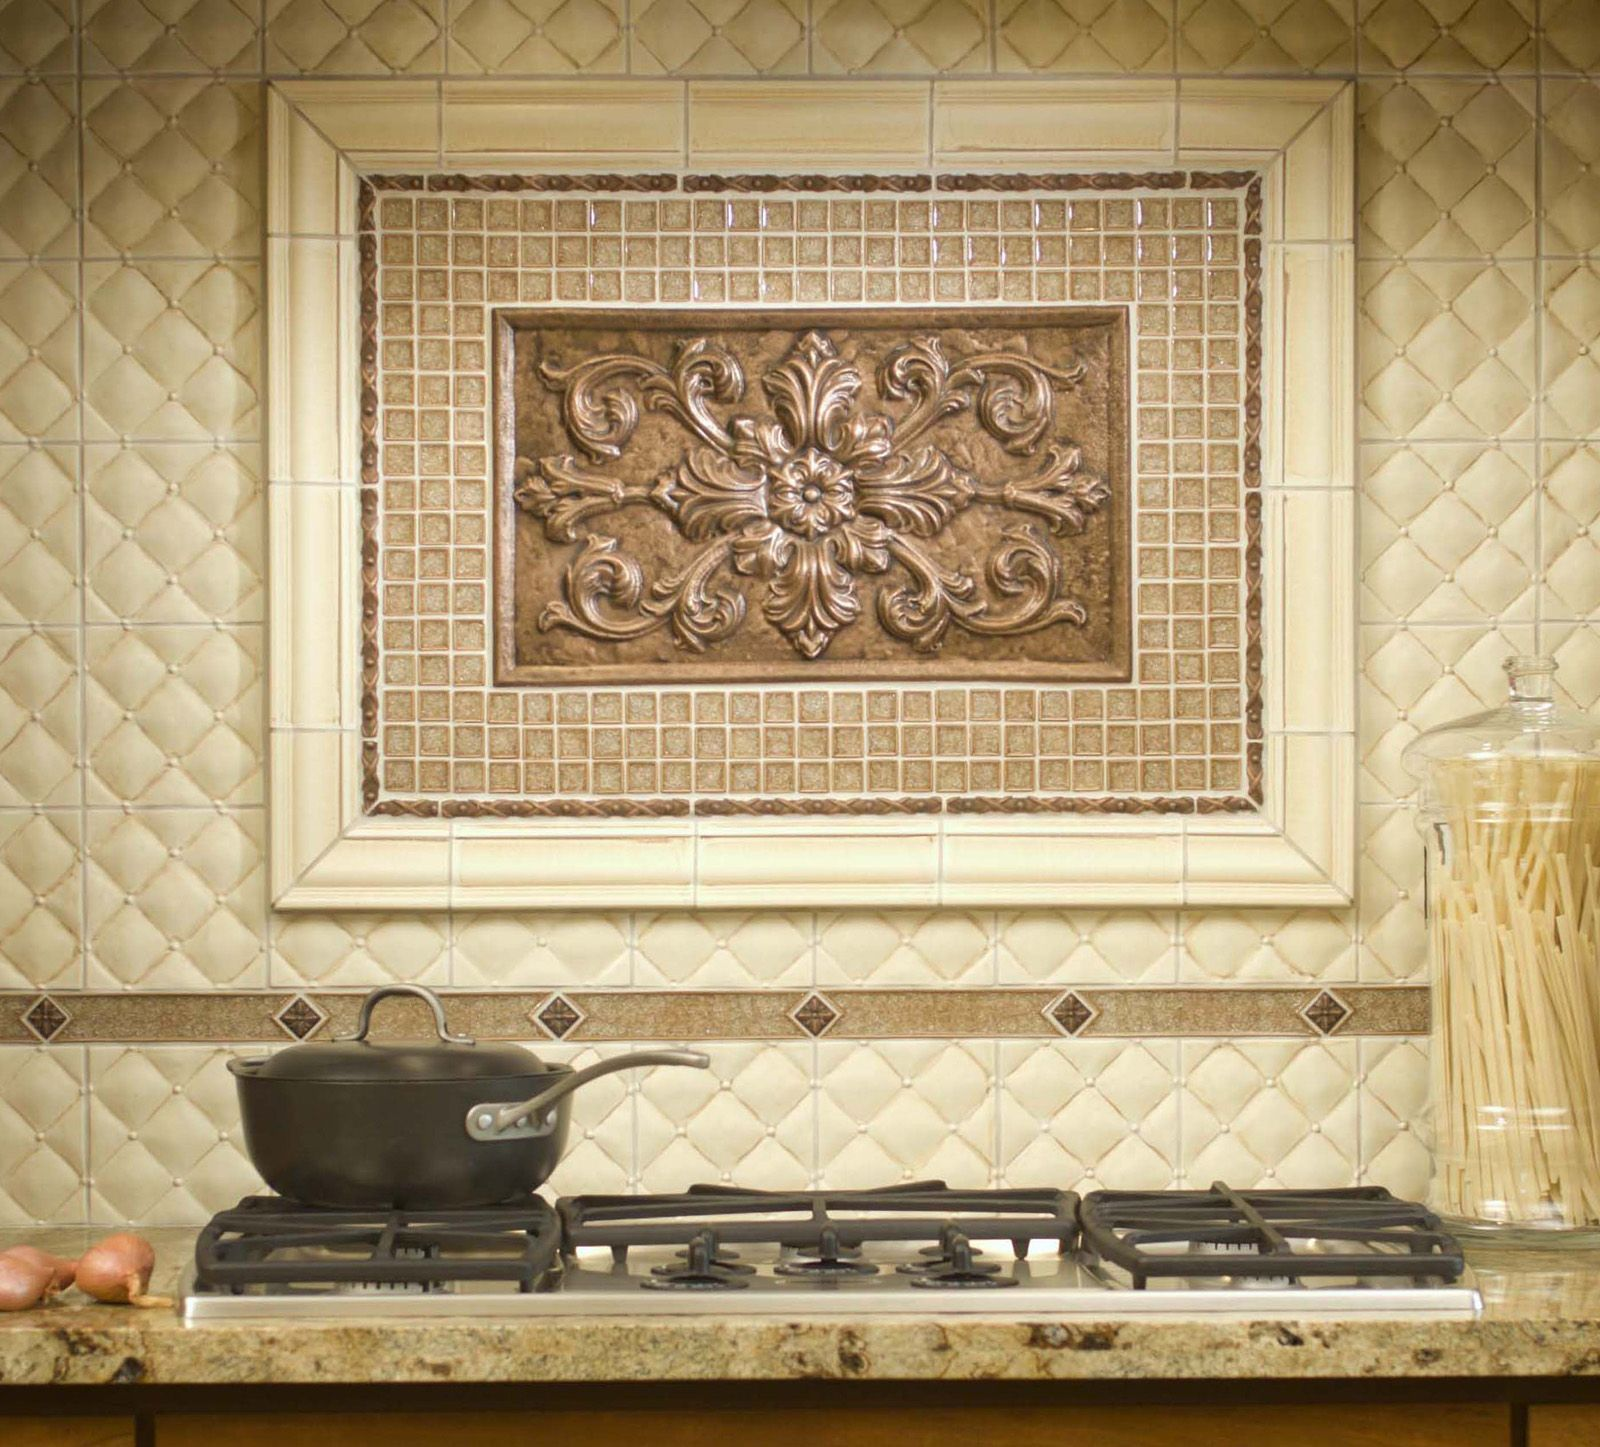 Sonoma backsplash custom blend of handcrafted tile from sonoma sonoma backsplash custom blend of handcrafted tile from sonoma tilemakers acme brick dailygadgetfo Choice Image